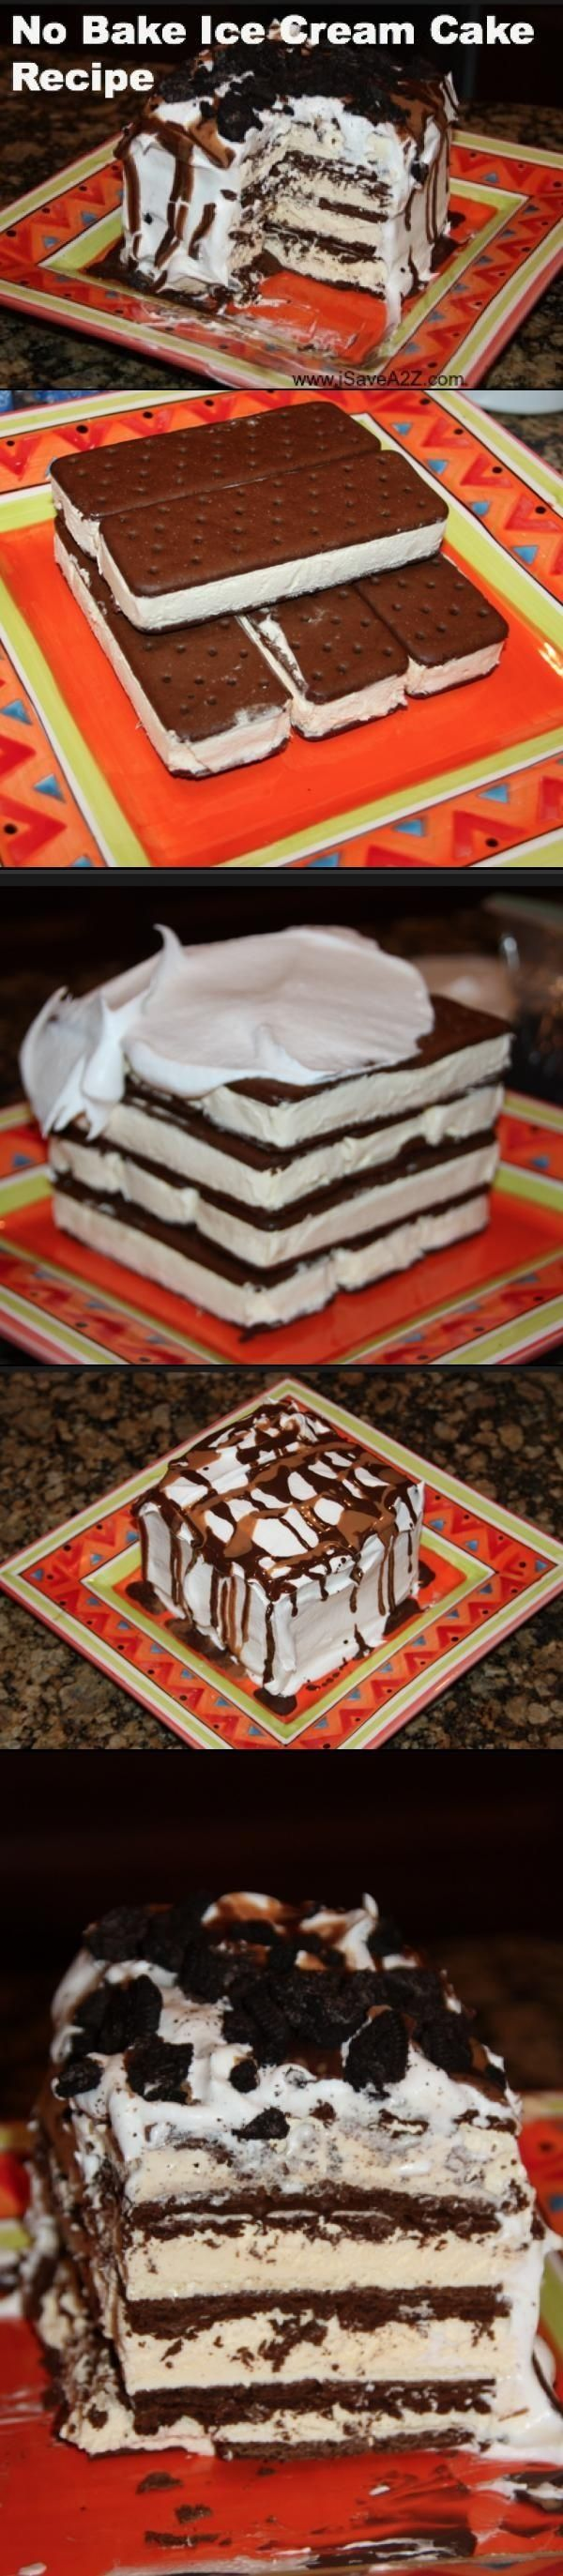 NO BAKING REQD!! Ice Cream Sandwich cake that is to die for!!!.